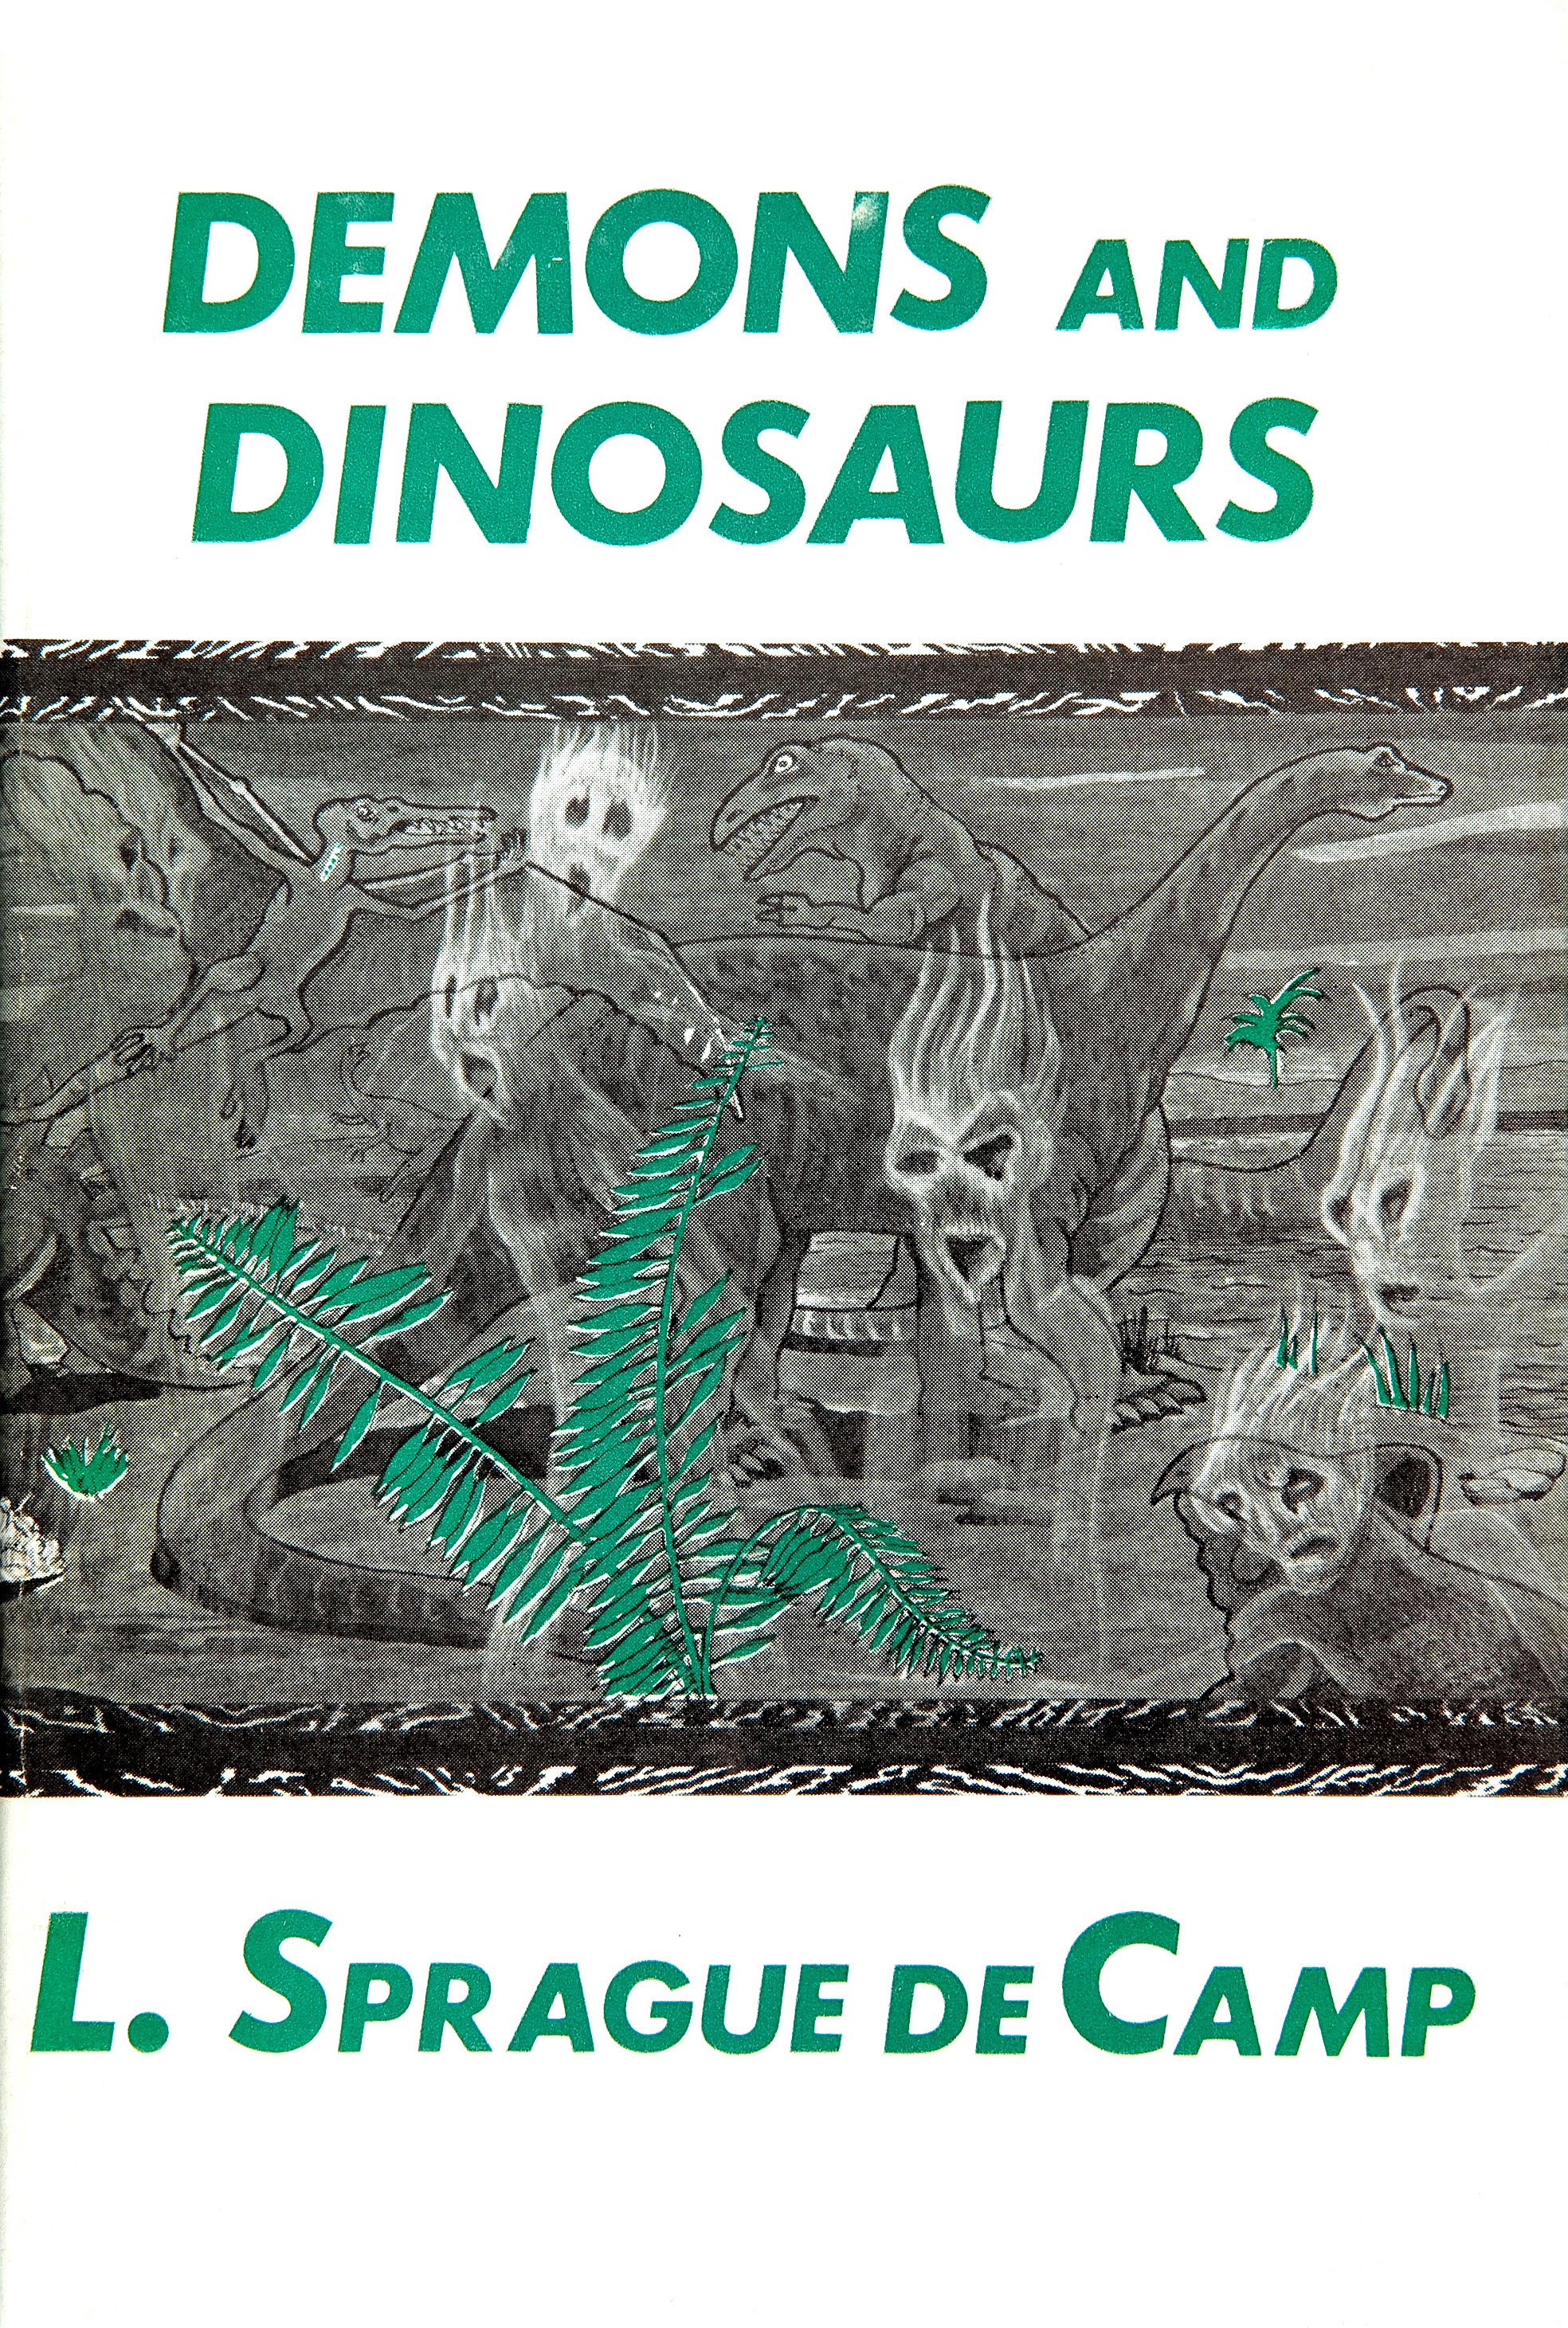 Frank Utpatel cover For L. Sprague de Camp's Demons and Dinosaurs. Arkham House,1970